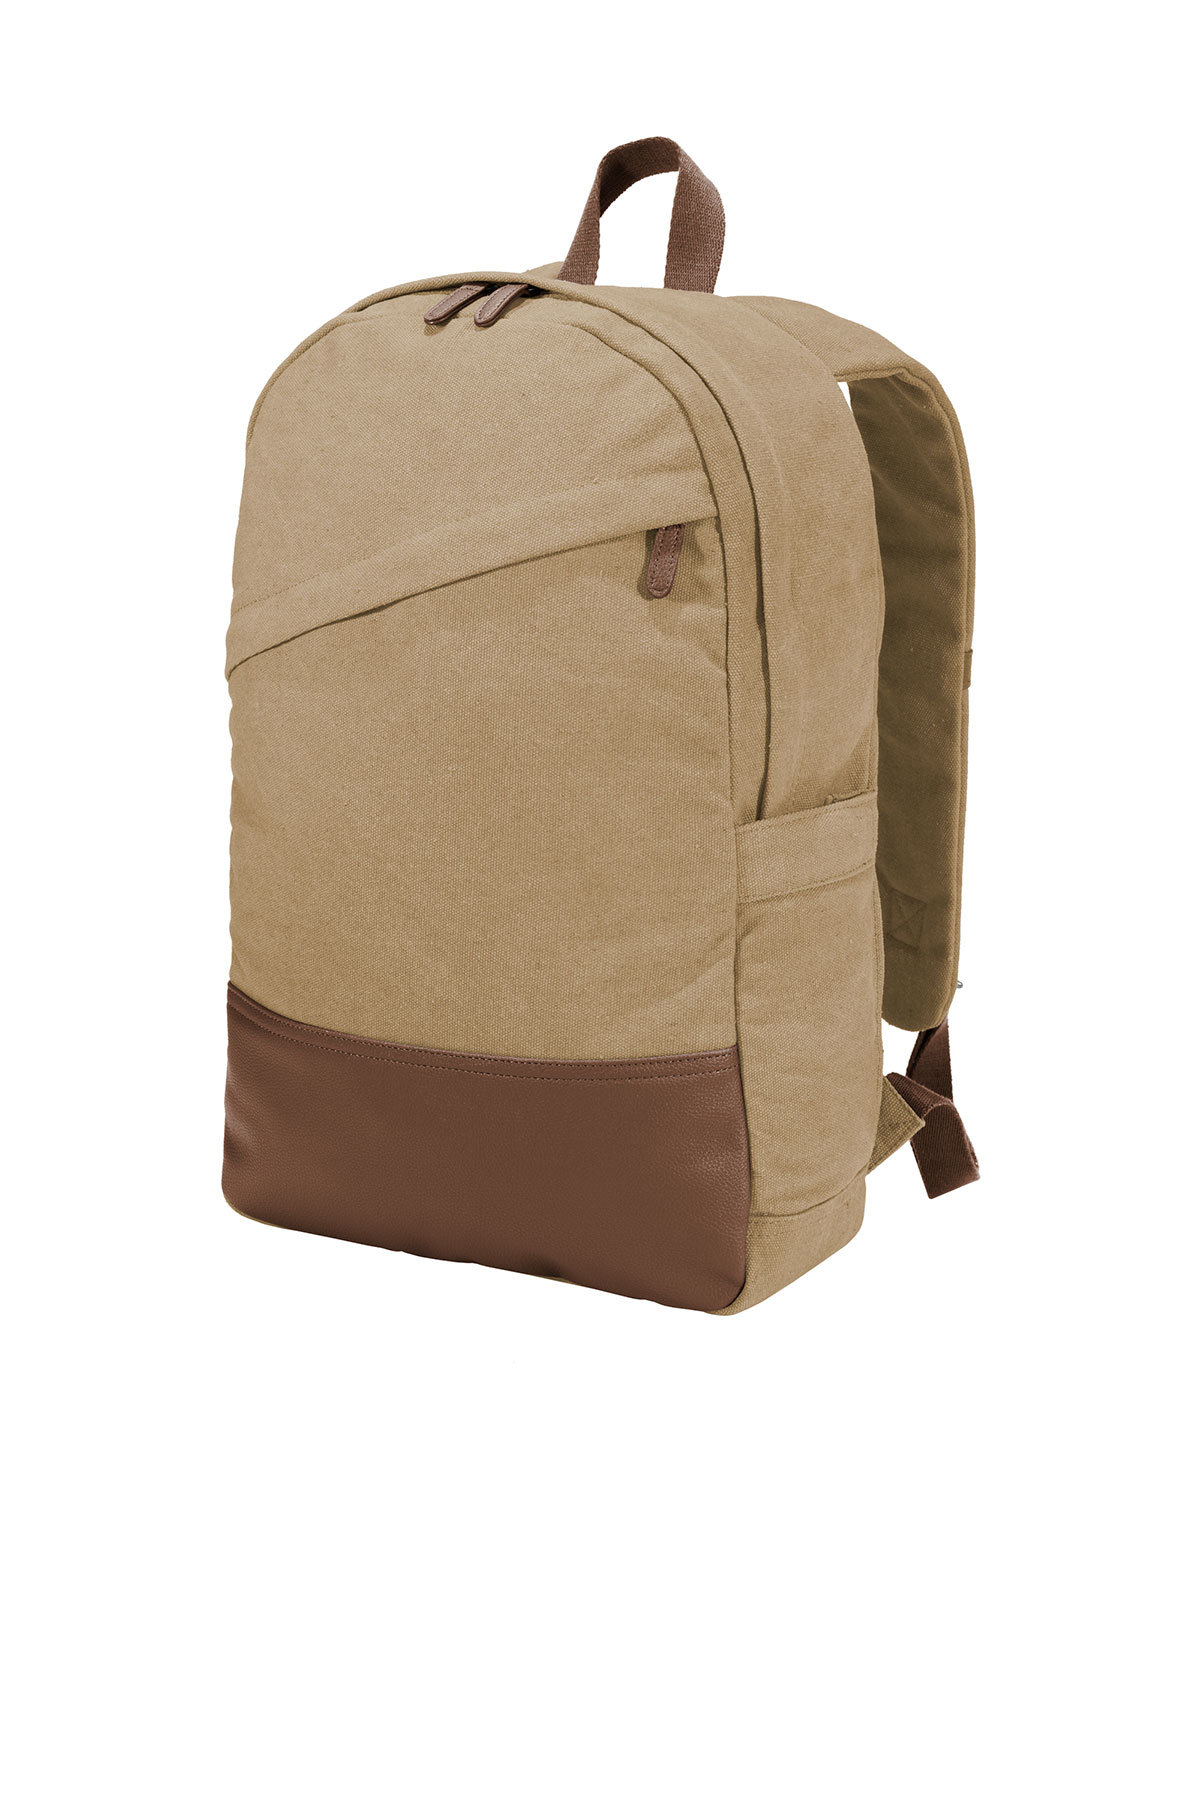 Port Authority BG210 - Cotton Canvas Backpack